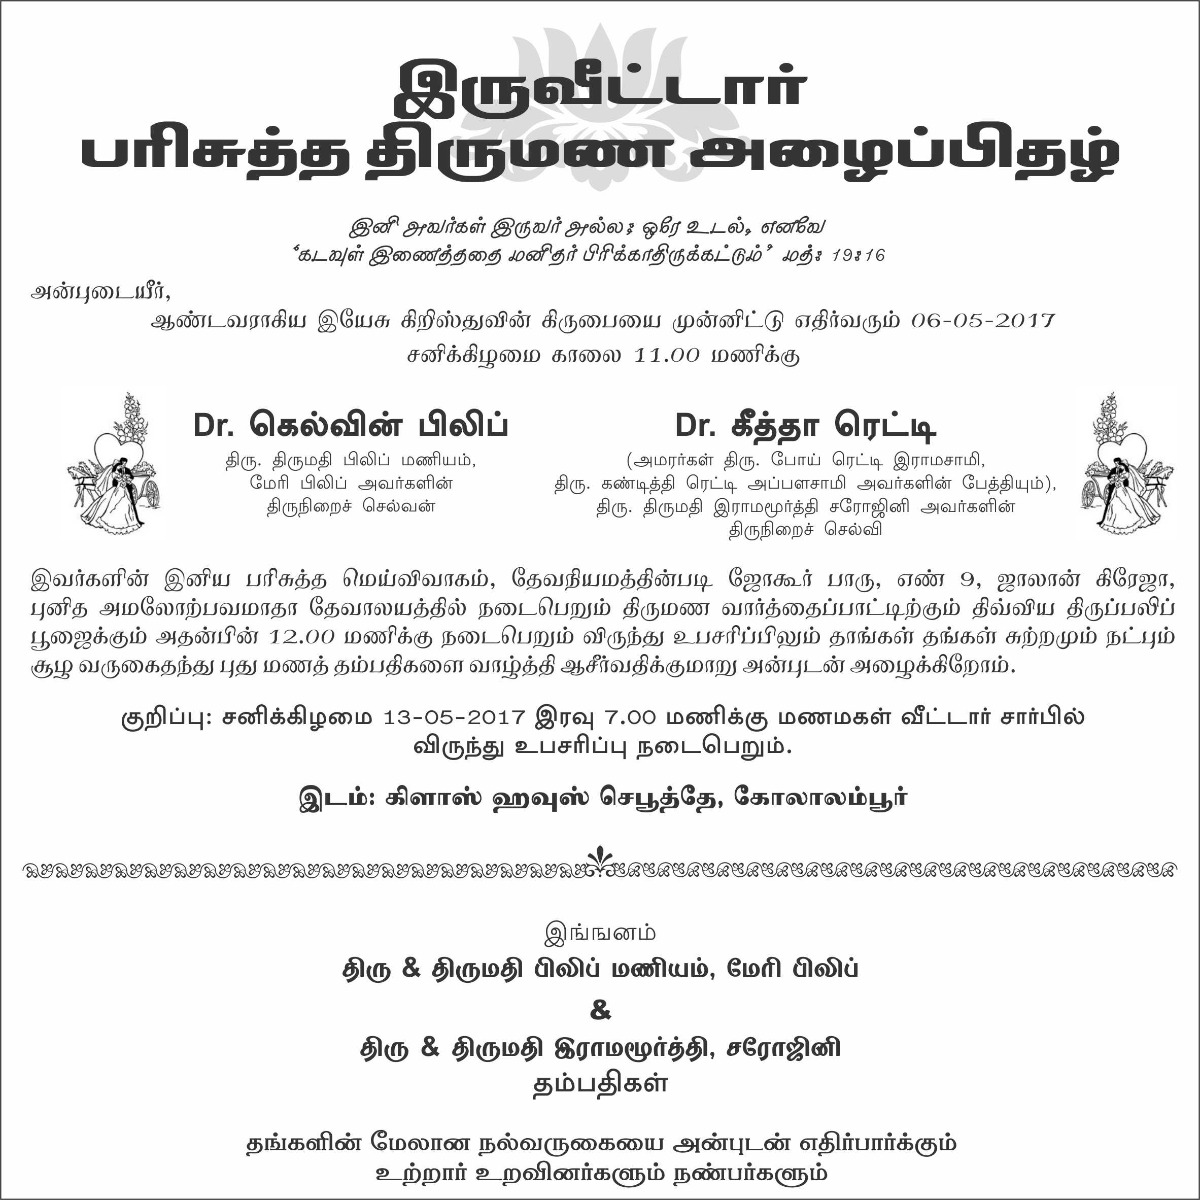 wedding invitation wording in tamil sample marriage invitation wordings in tamil language tamil wedding invitation wordings to invite friends marriage invitation wordings in tamil and english marriage invitation in tamil format wedding invitation wording in tamil for friends wedding invitation wording in tamil kavithai wedding invitation wording for friends from bride and groom in tamil tamil wedding invitation templates free